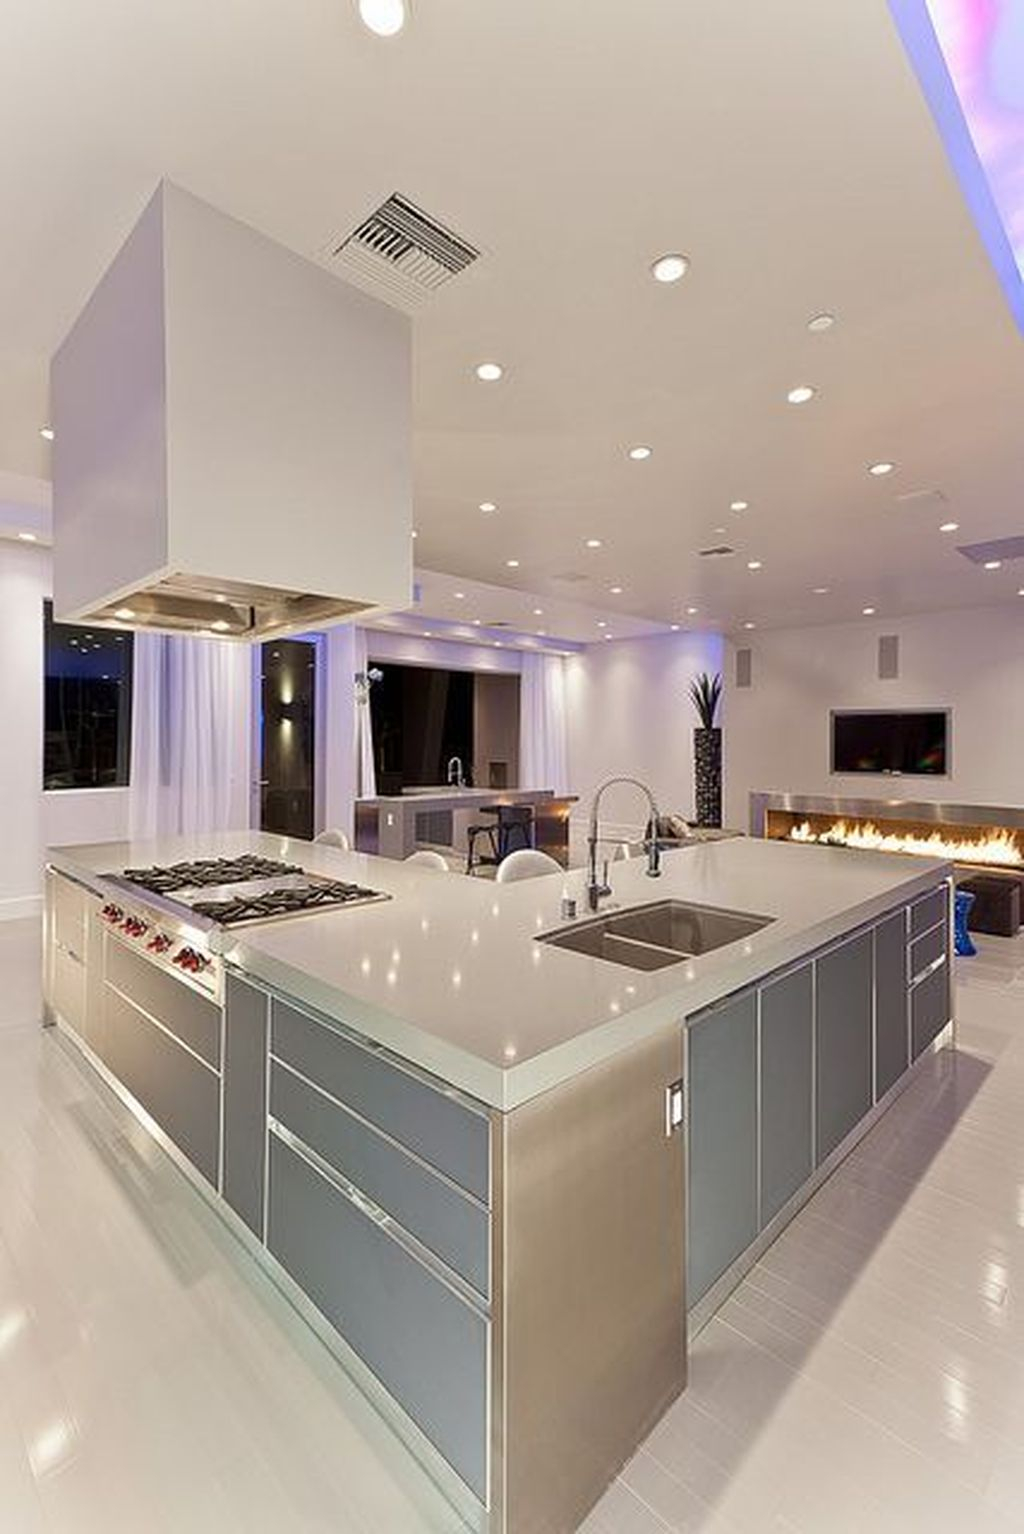 20 Modern Kitchen Design Ideas you Can Try in your Dream Home ...